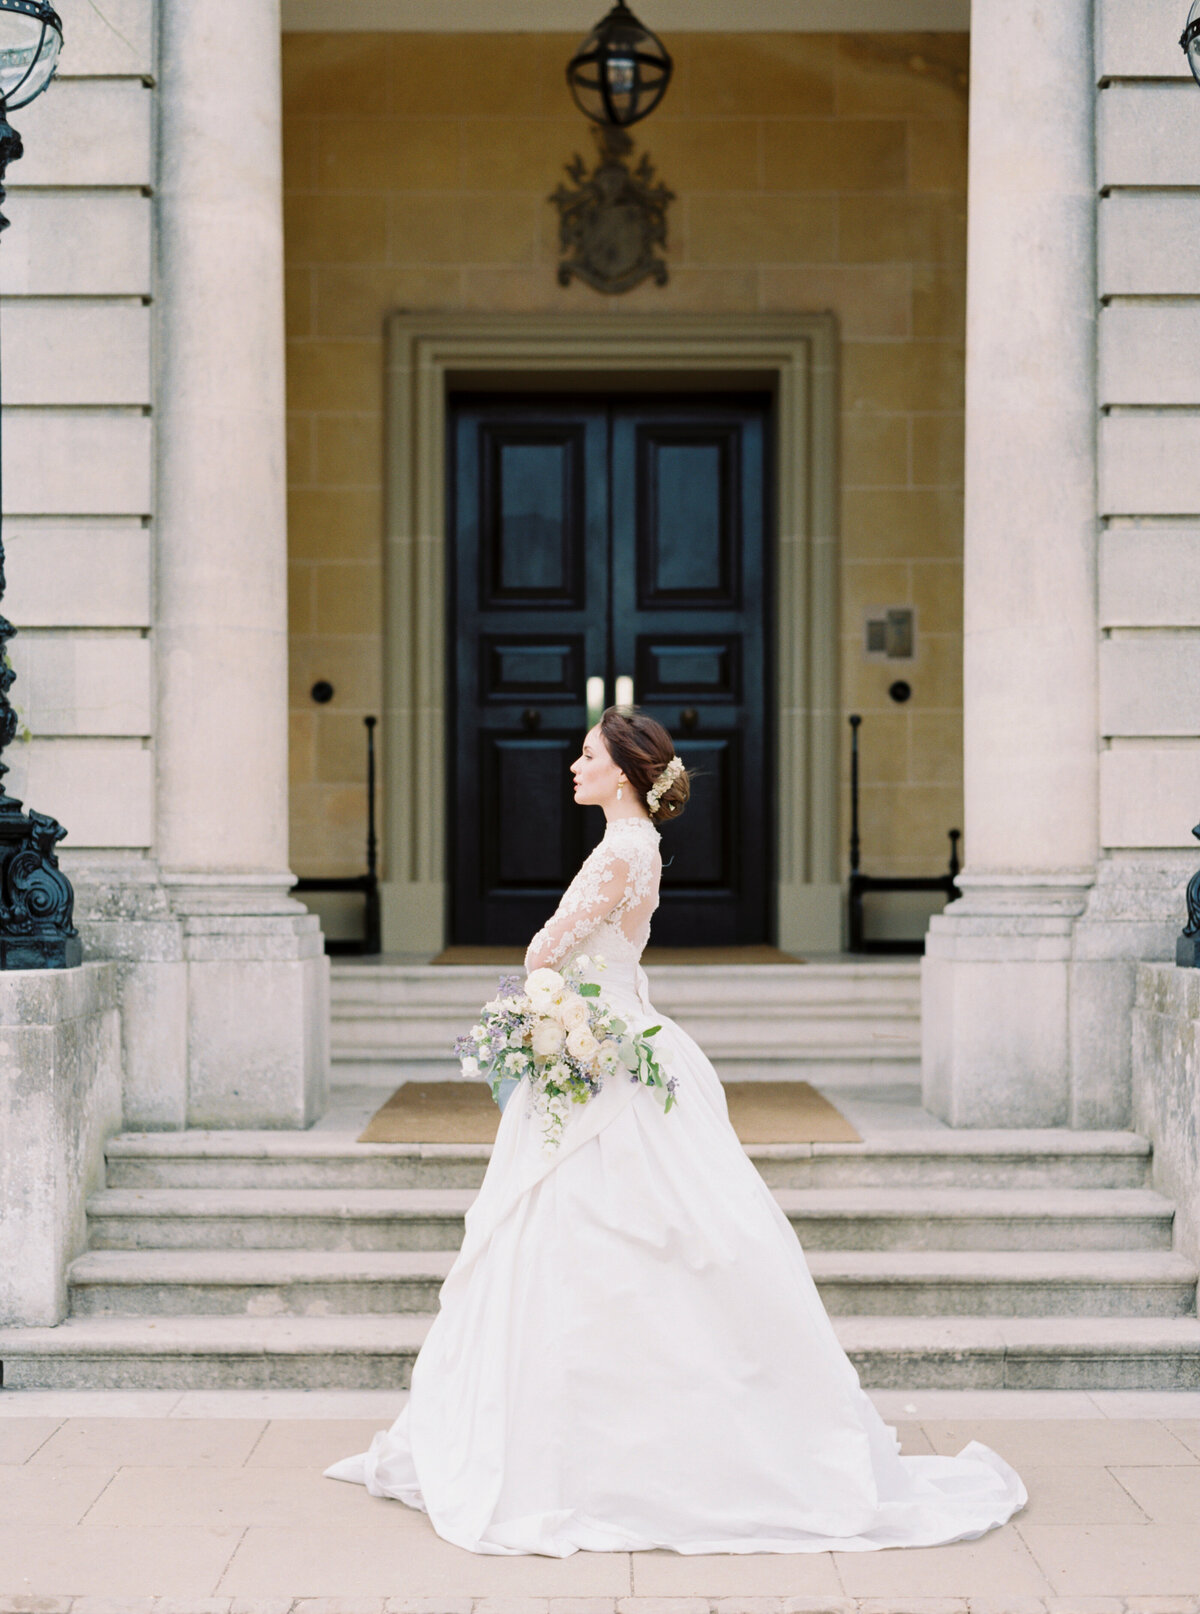 TiffaneyChildsPhotography-LondonWeddingPhotographer-Julieta+Cedrick-HedsorHouseWedding-157